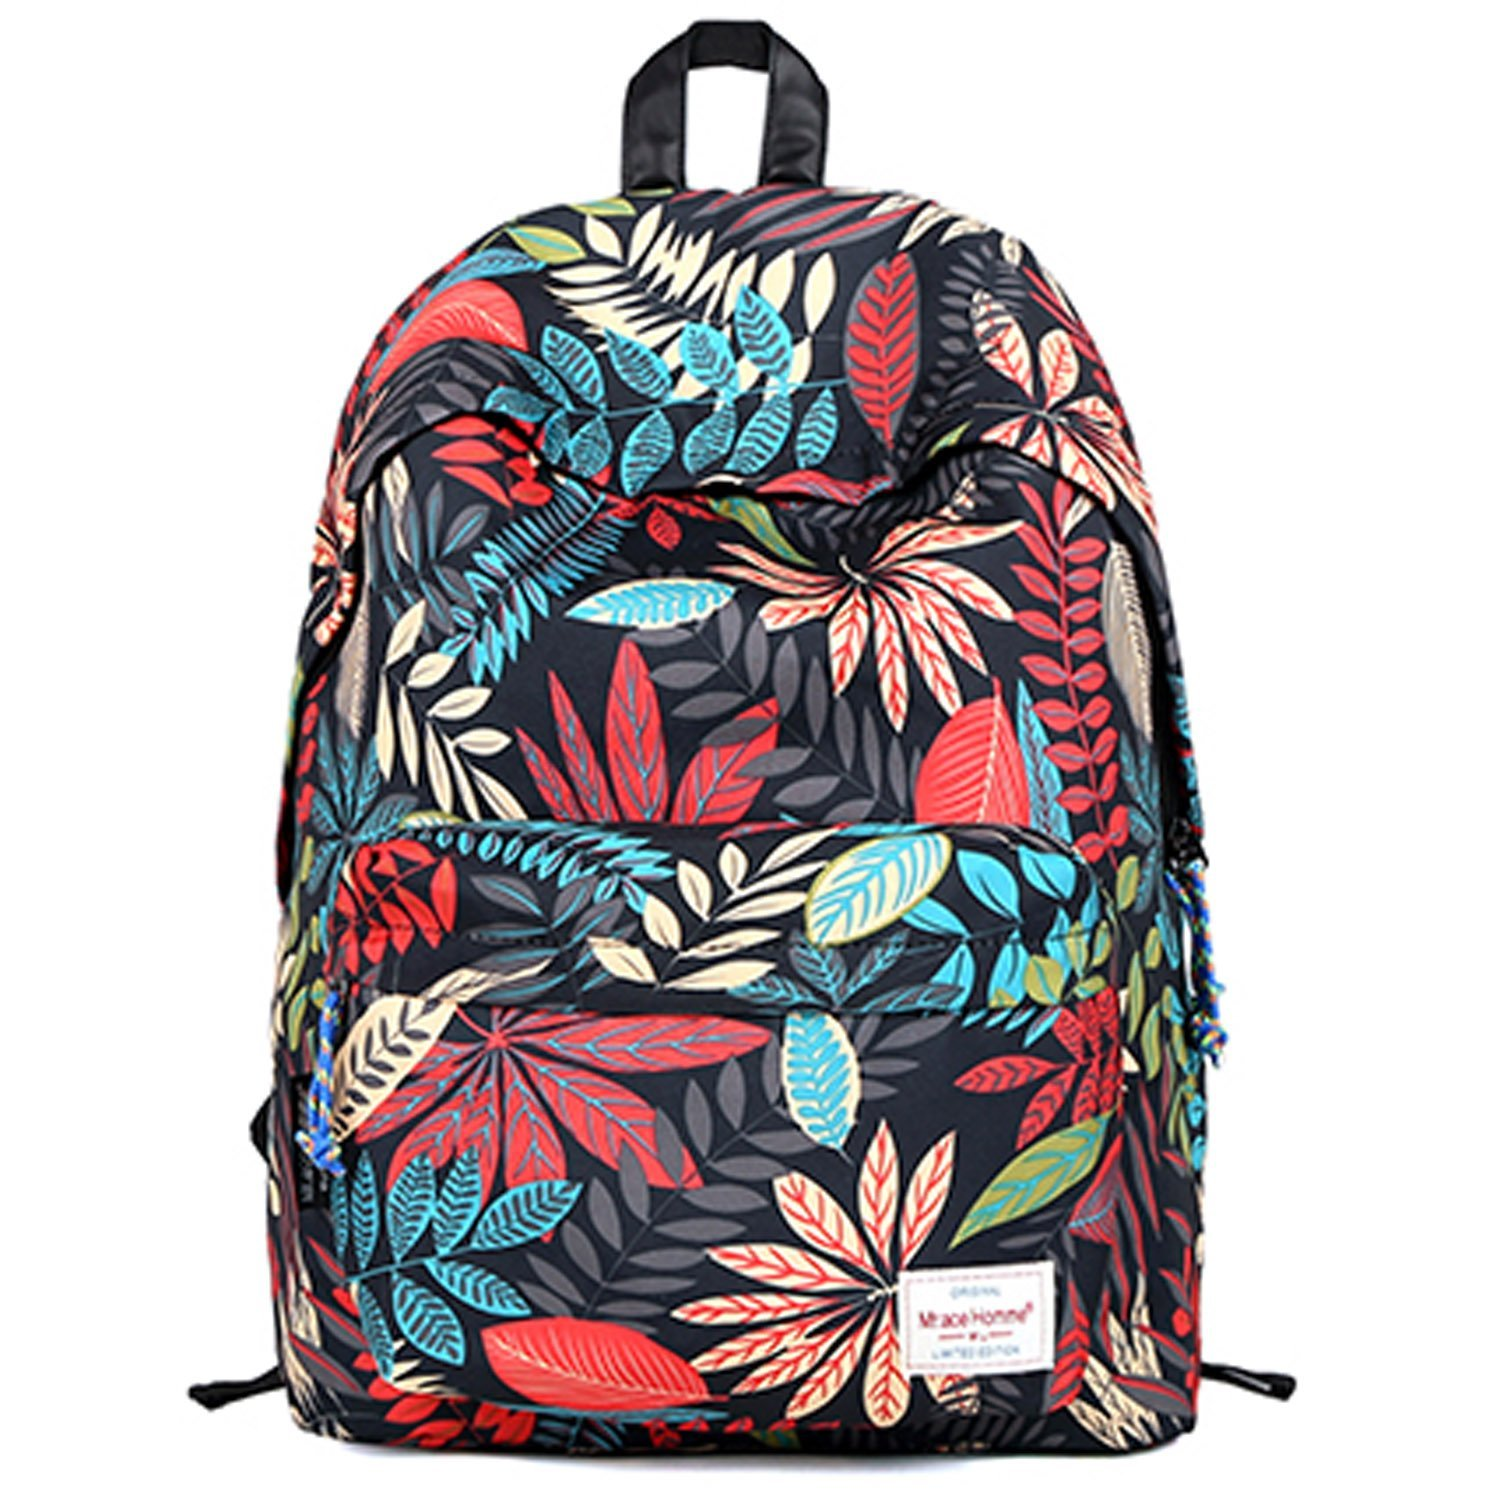 Amazon.com: EcoCity Fashion School Laptop Backpacks Book Bags (Floral-Black): Clothing